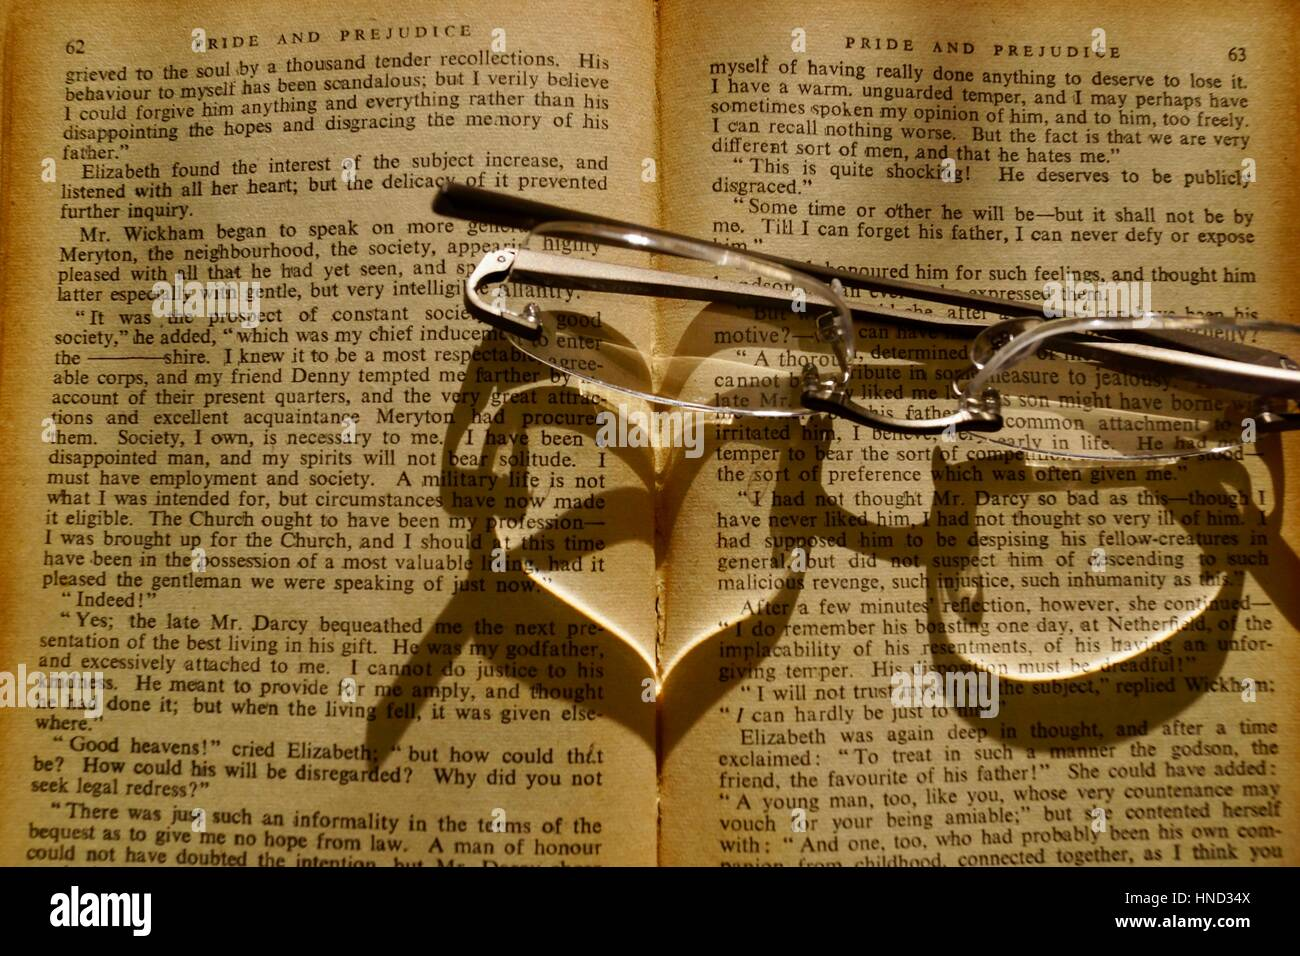 Pride and prejudice read with love - Stock Image